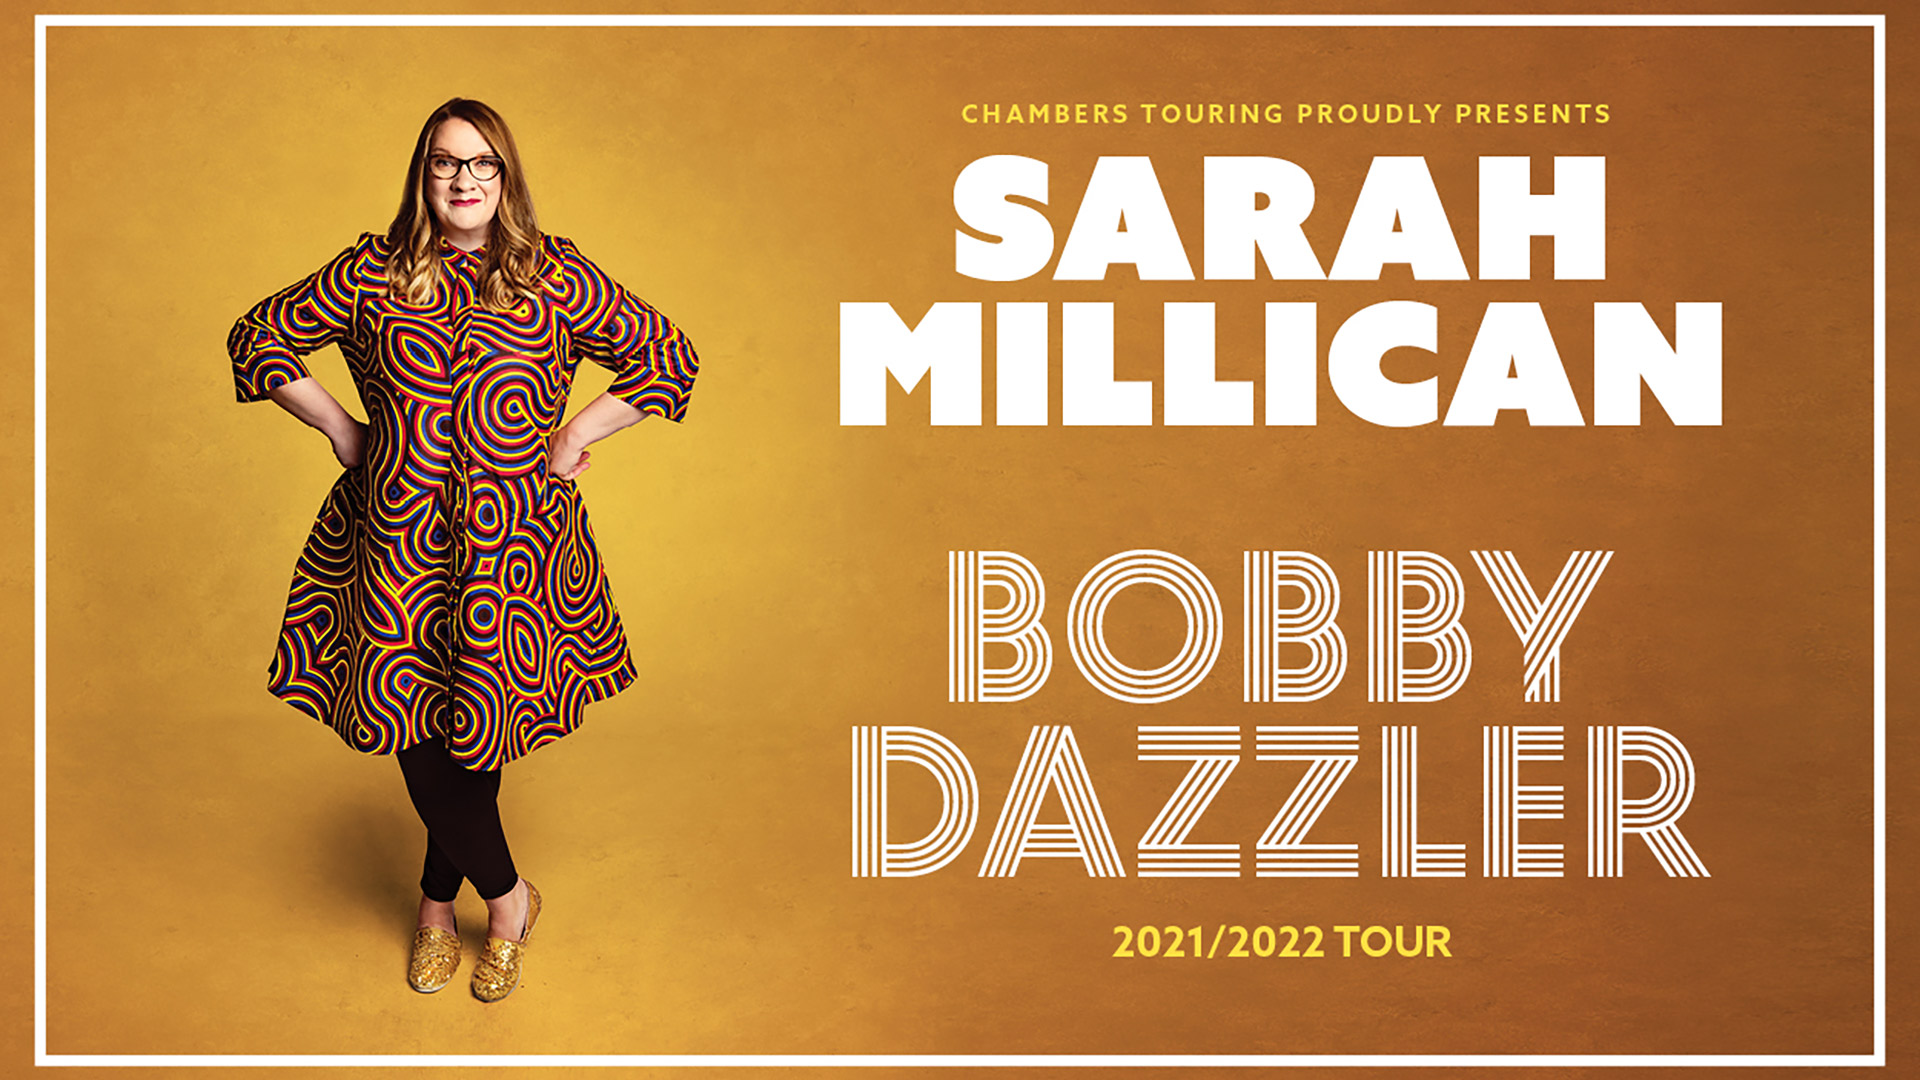 Sarah Millican in a multi-coloured dress with graphic design and sparkling gold shoes against a warm golden yellow background